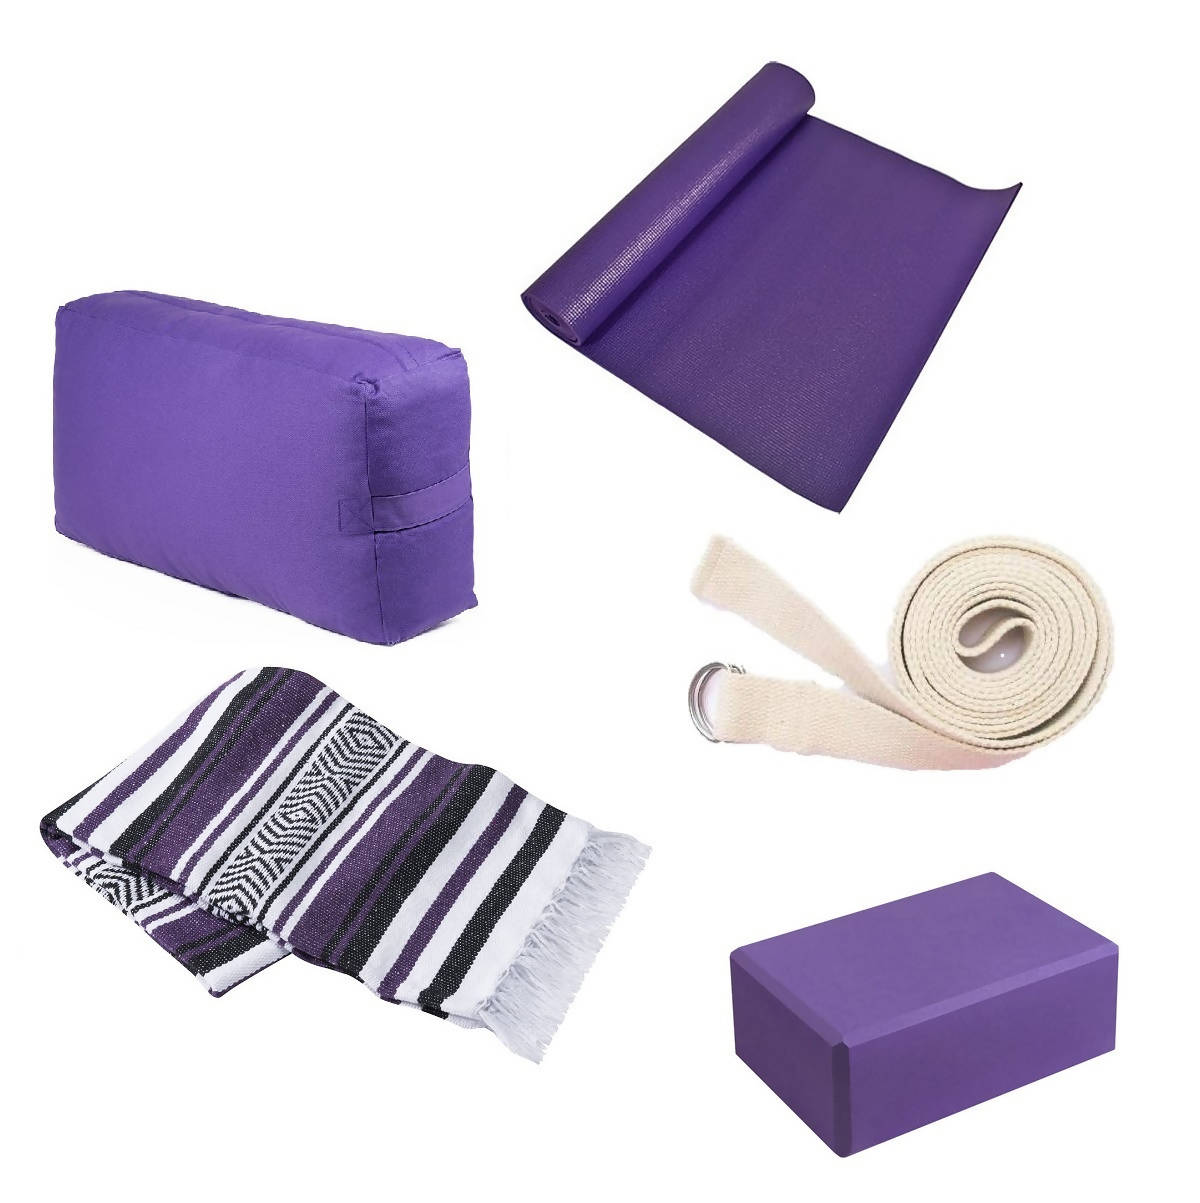 Yoga Foam Blocks - 4""